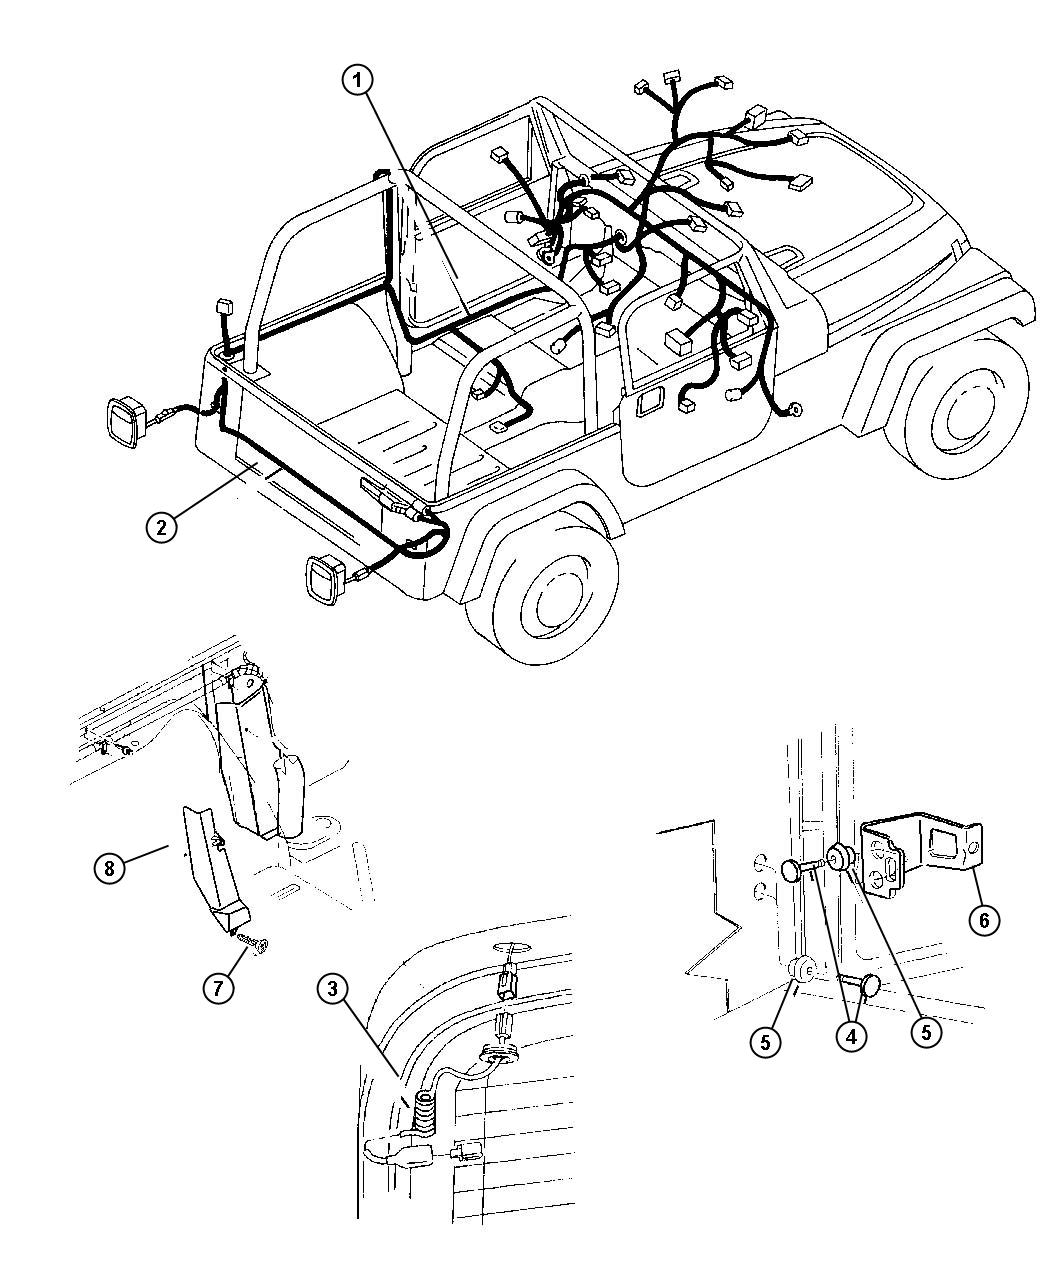 1975 jeep cj5 wiring diagram  jeep  wiring diagram gallery